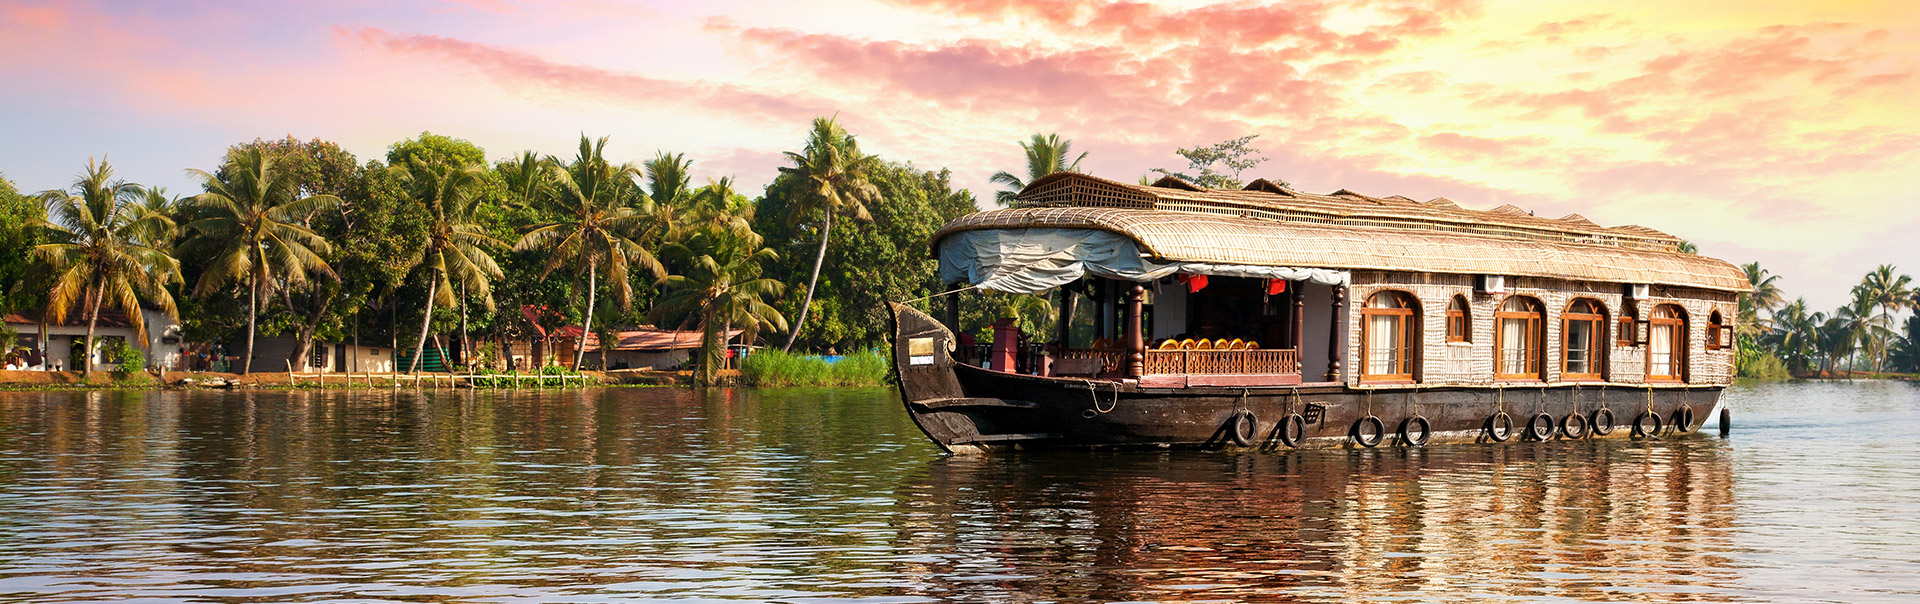 Kerala & the Southern Highlights Tour | Wendy Wu Tours